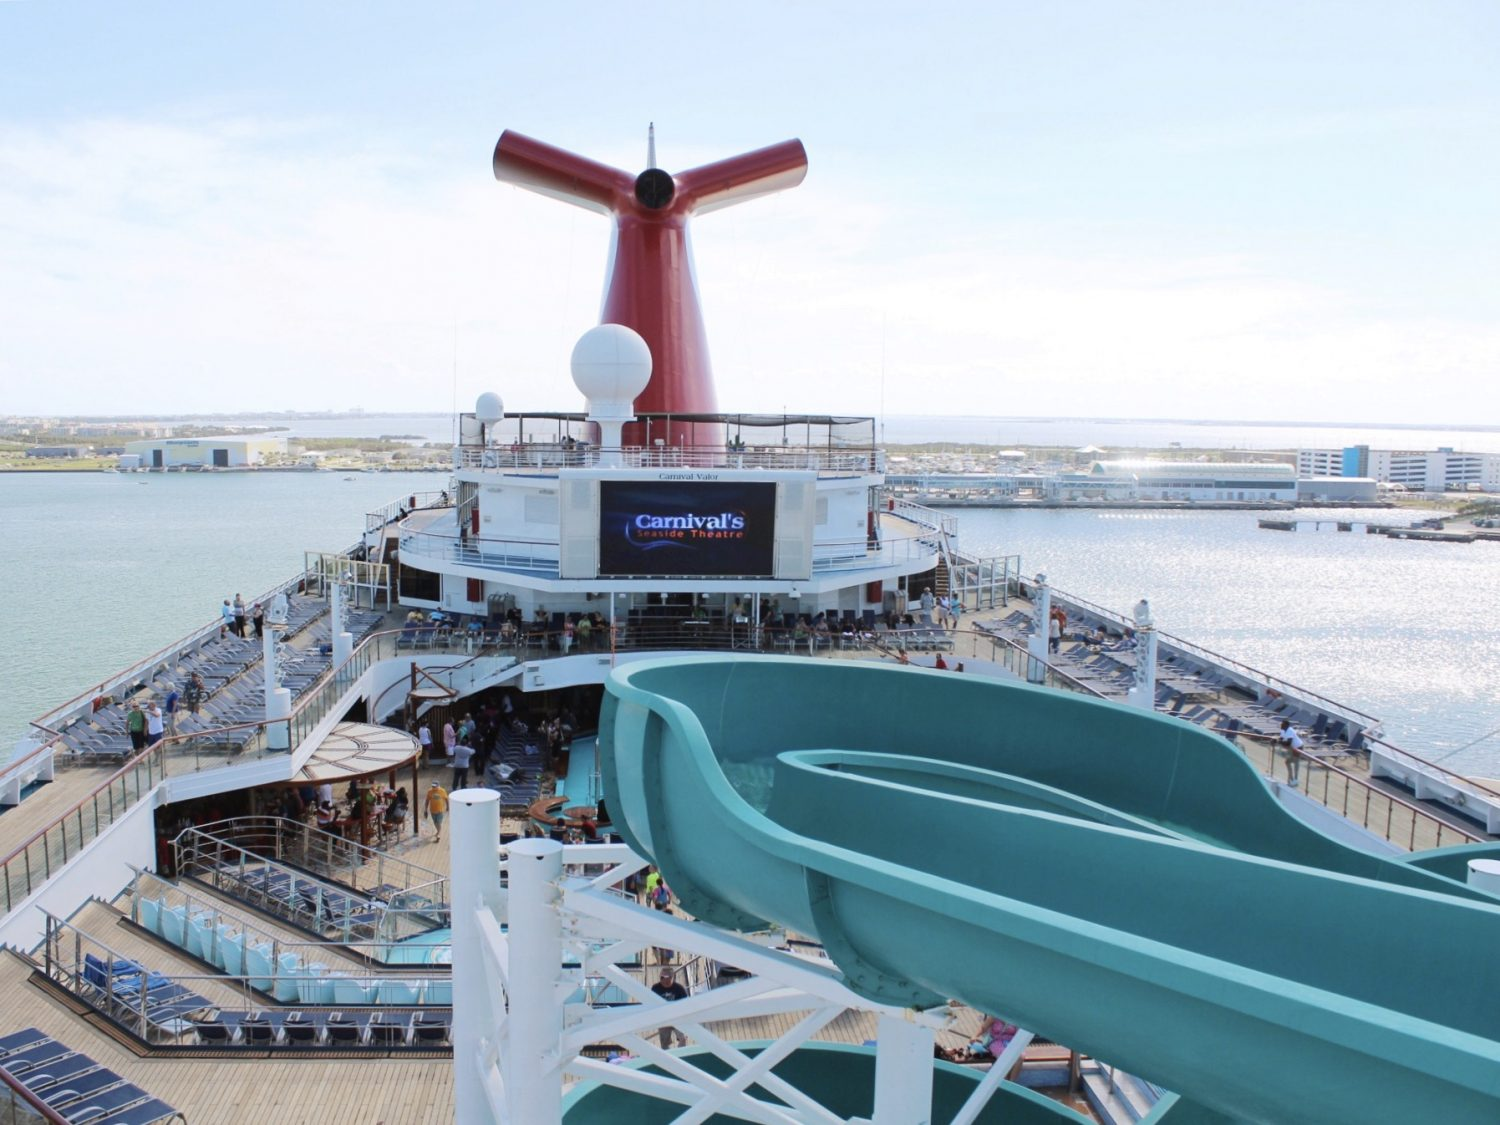 A Tour Of The Carnival Valor Cruise Ship  Balcony